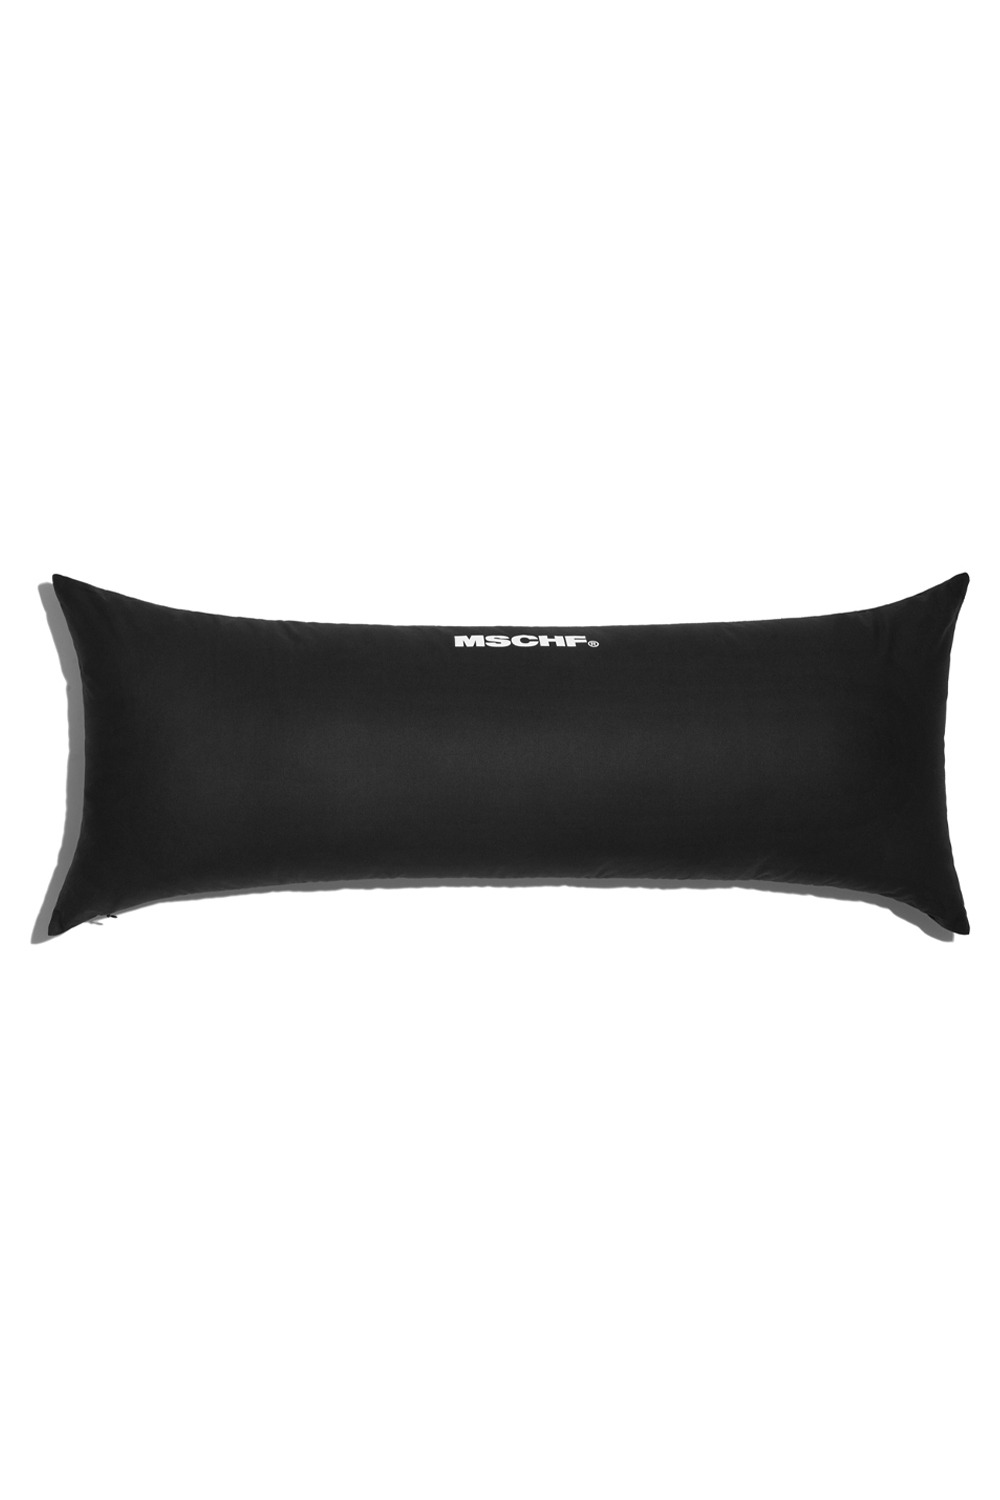 COLLECTIVE OG BODY PILLOW LONG CUSHION_black